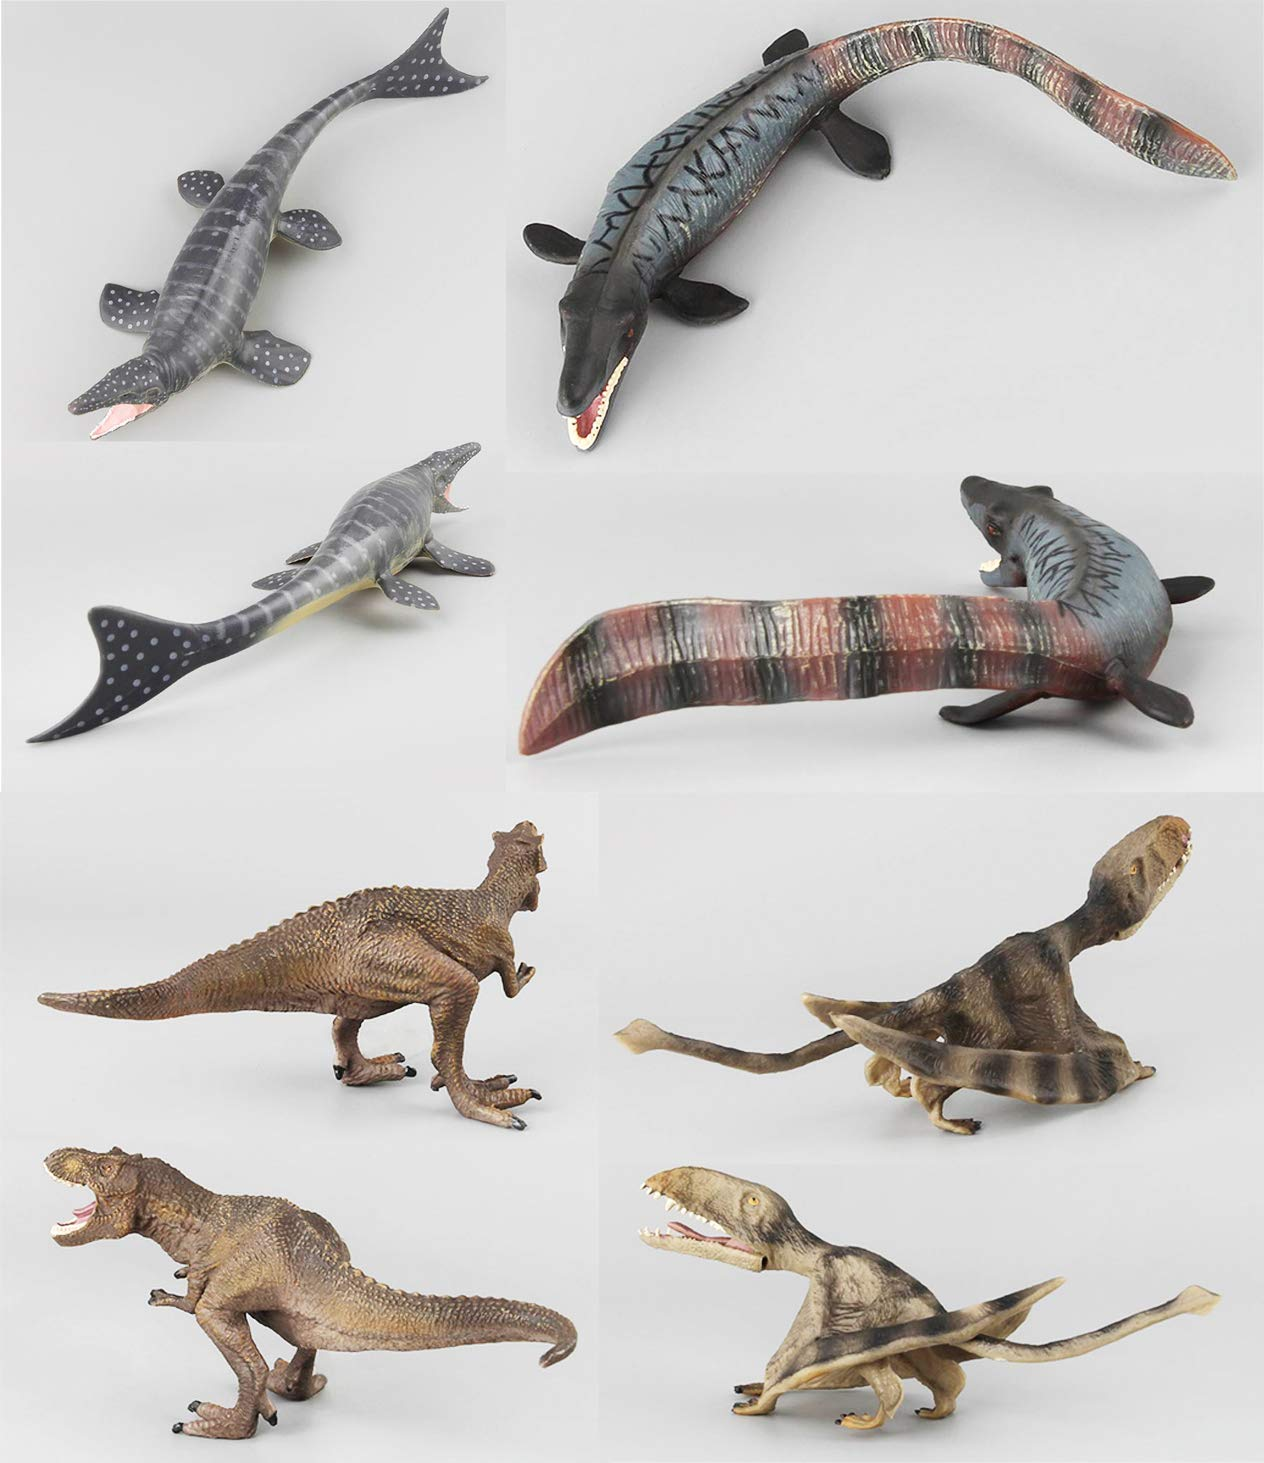 HiPlay Dinosaur Toy Figures 7 Packs Set-Realistic Design with Amazing Detail Hand-Painted Lifelike Dino Models for Kids//Collectors HP-D020